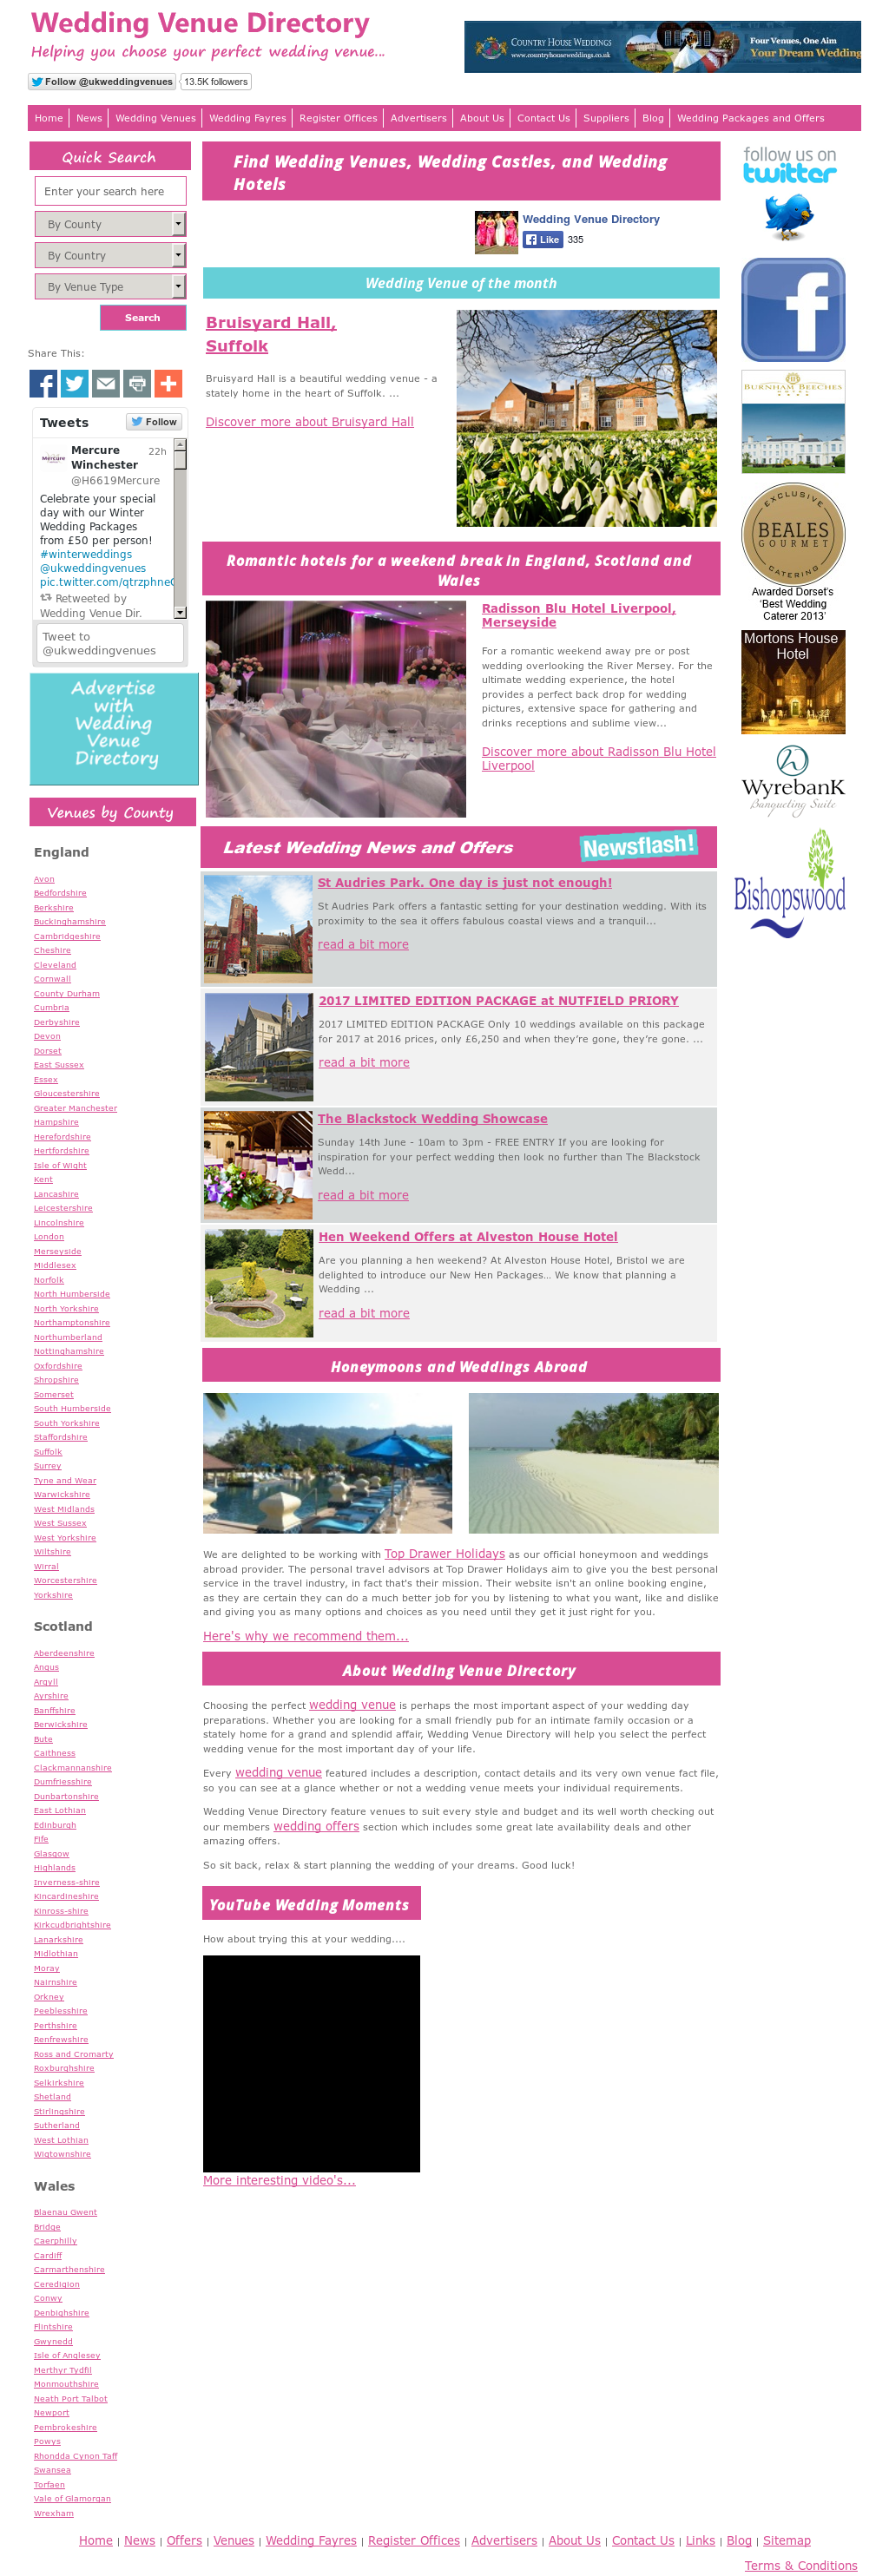 Wedding Venue Directory Competitors, Revenue and Employees - Owler